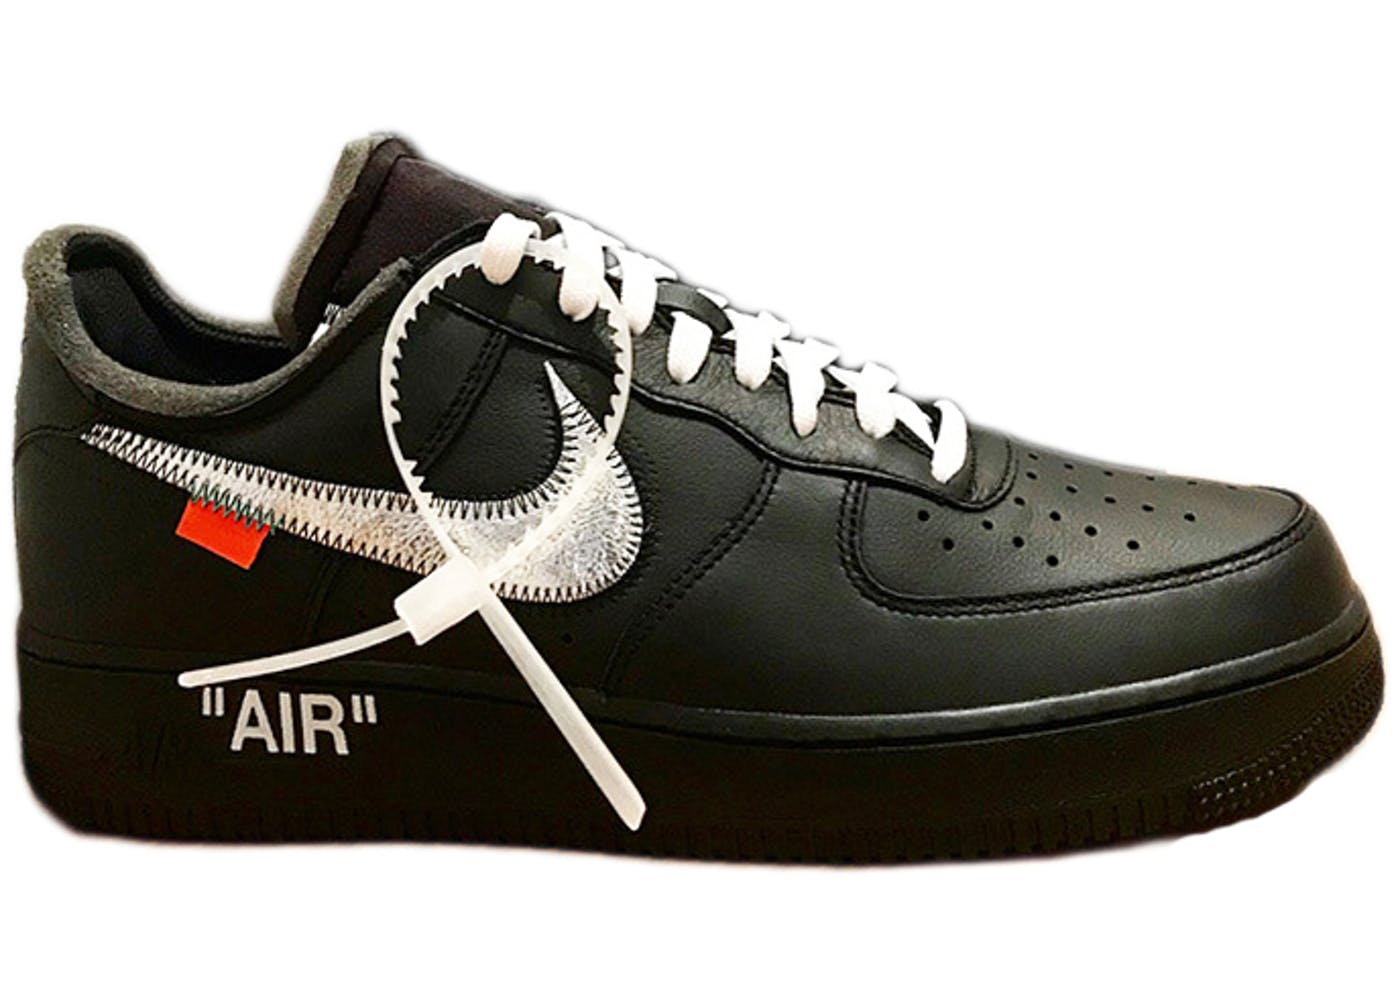 Off-White x MoMA x Nike Air Force 1 Low